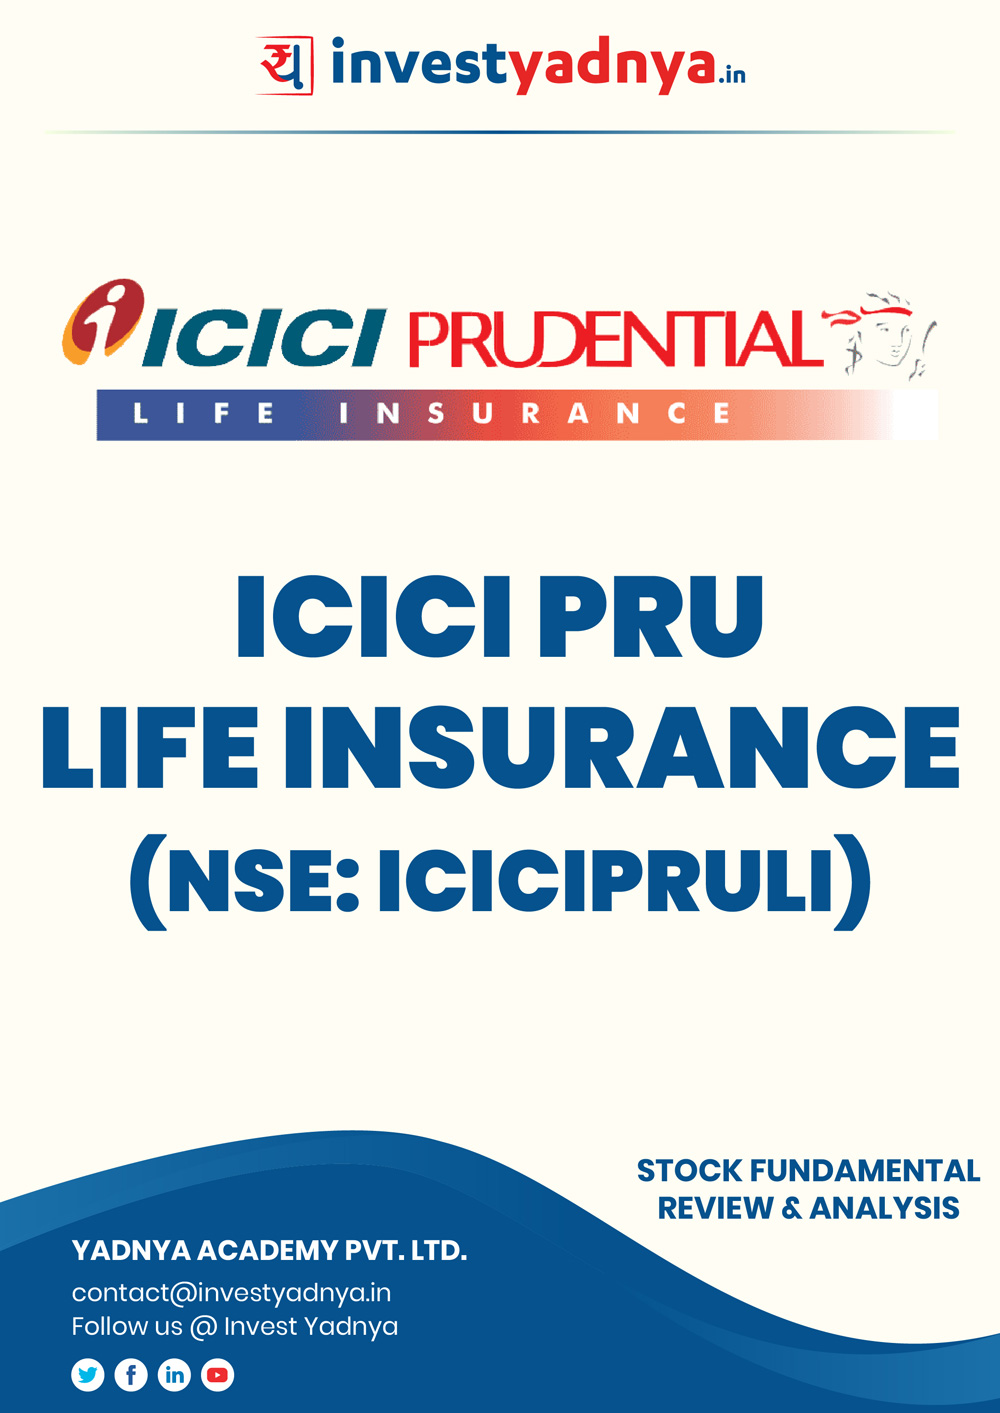 ICICI Prudential Life Insurance Company Ltd. company/Stock Review & Analysis based on Q12019-20 and FY2018-19 data. The book contains the Fundamental Analysis of the company considering both Quantitative (Financial) and Qualitative Parameters.